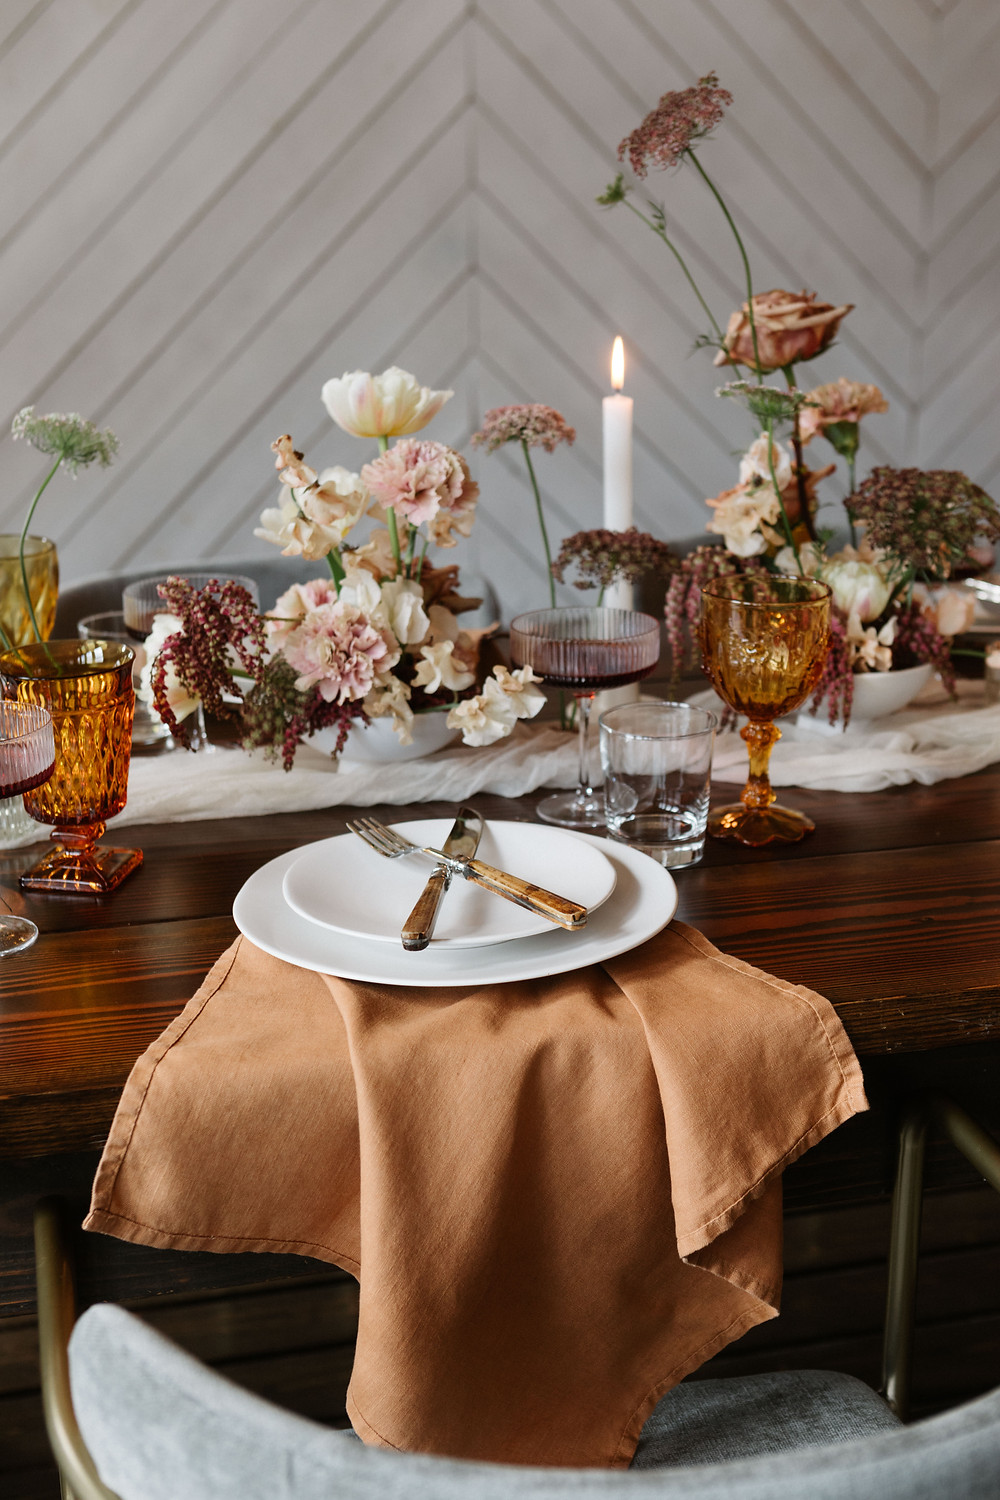 A mid-century modern tablescape with linen, chifrron, and vintage glasses